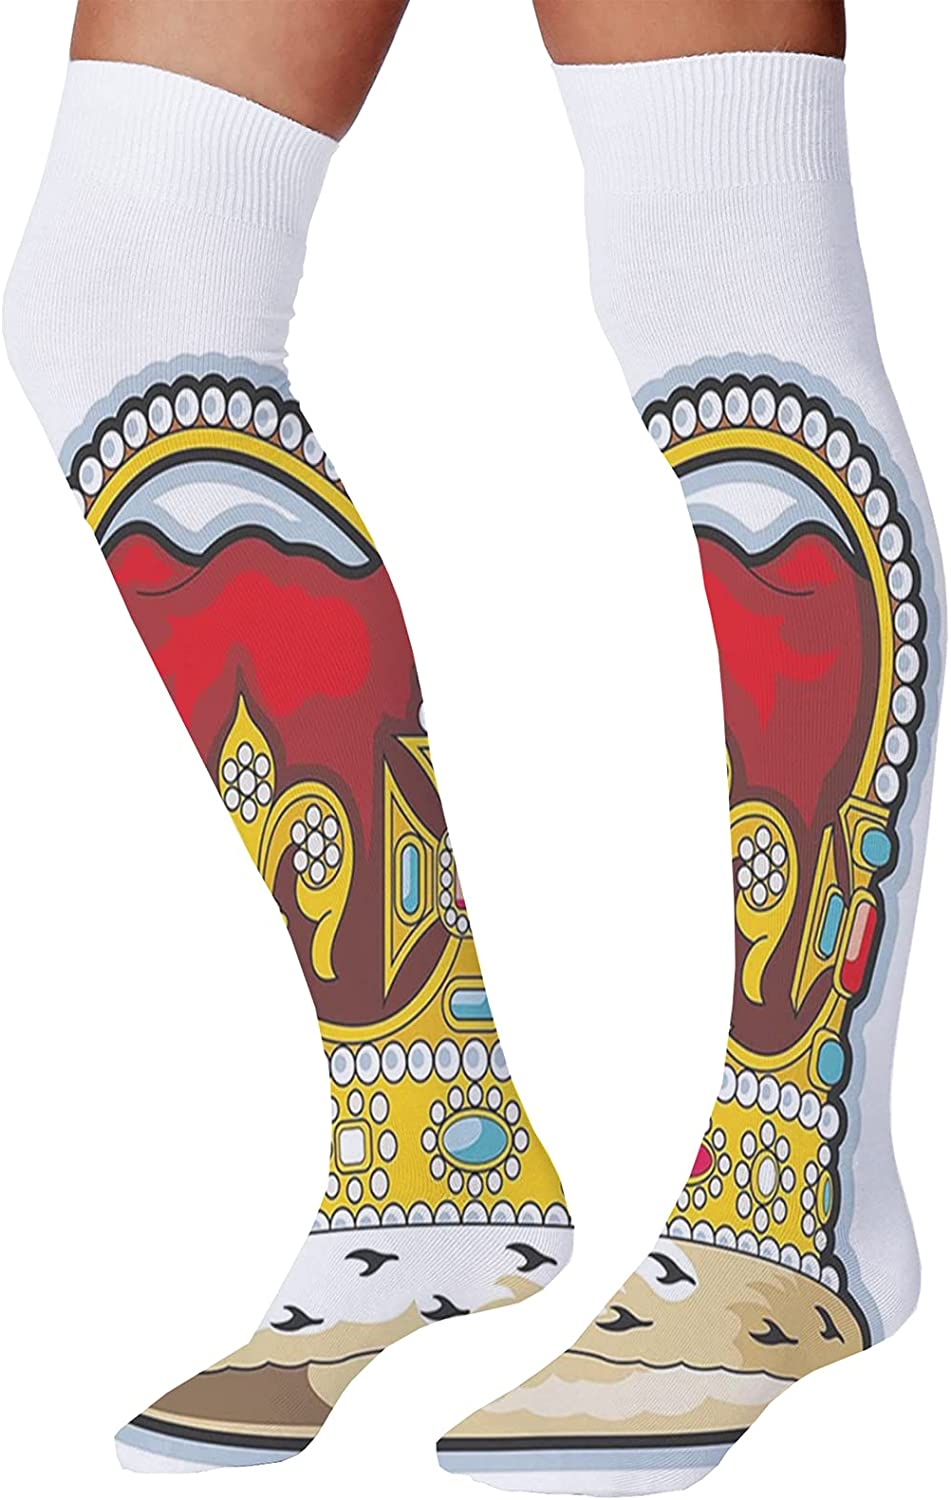 Men's and Women's Fun Socks,Mechanical Robots Pattern Scattered on a Plain Background Futuristic Concept